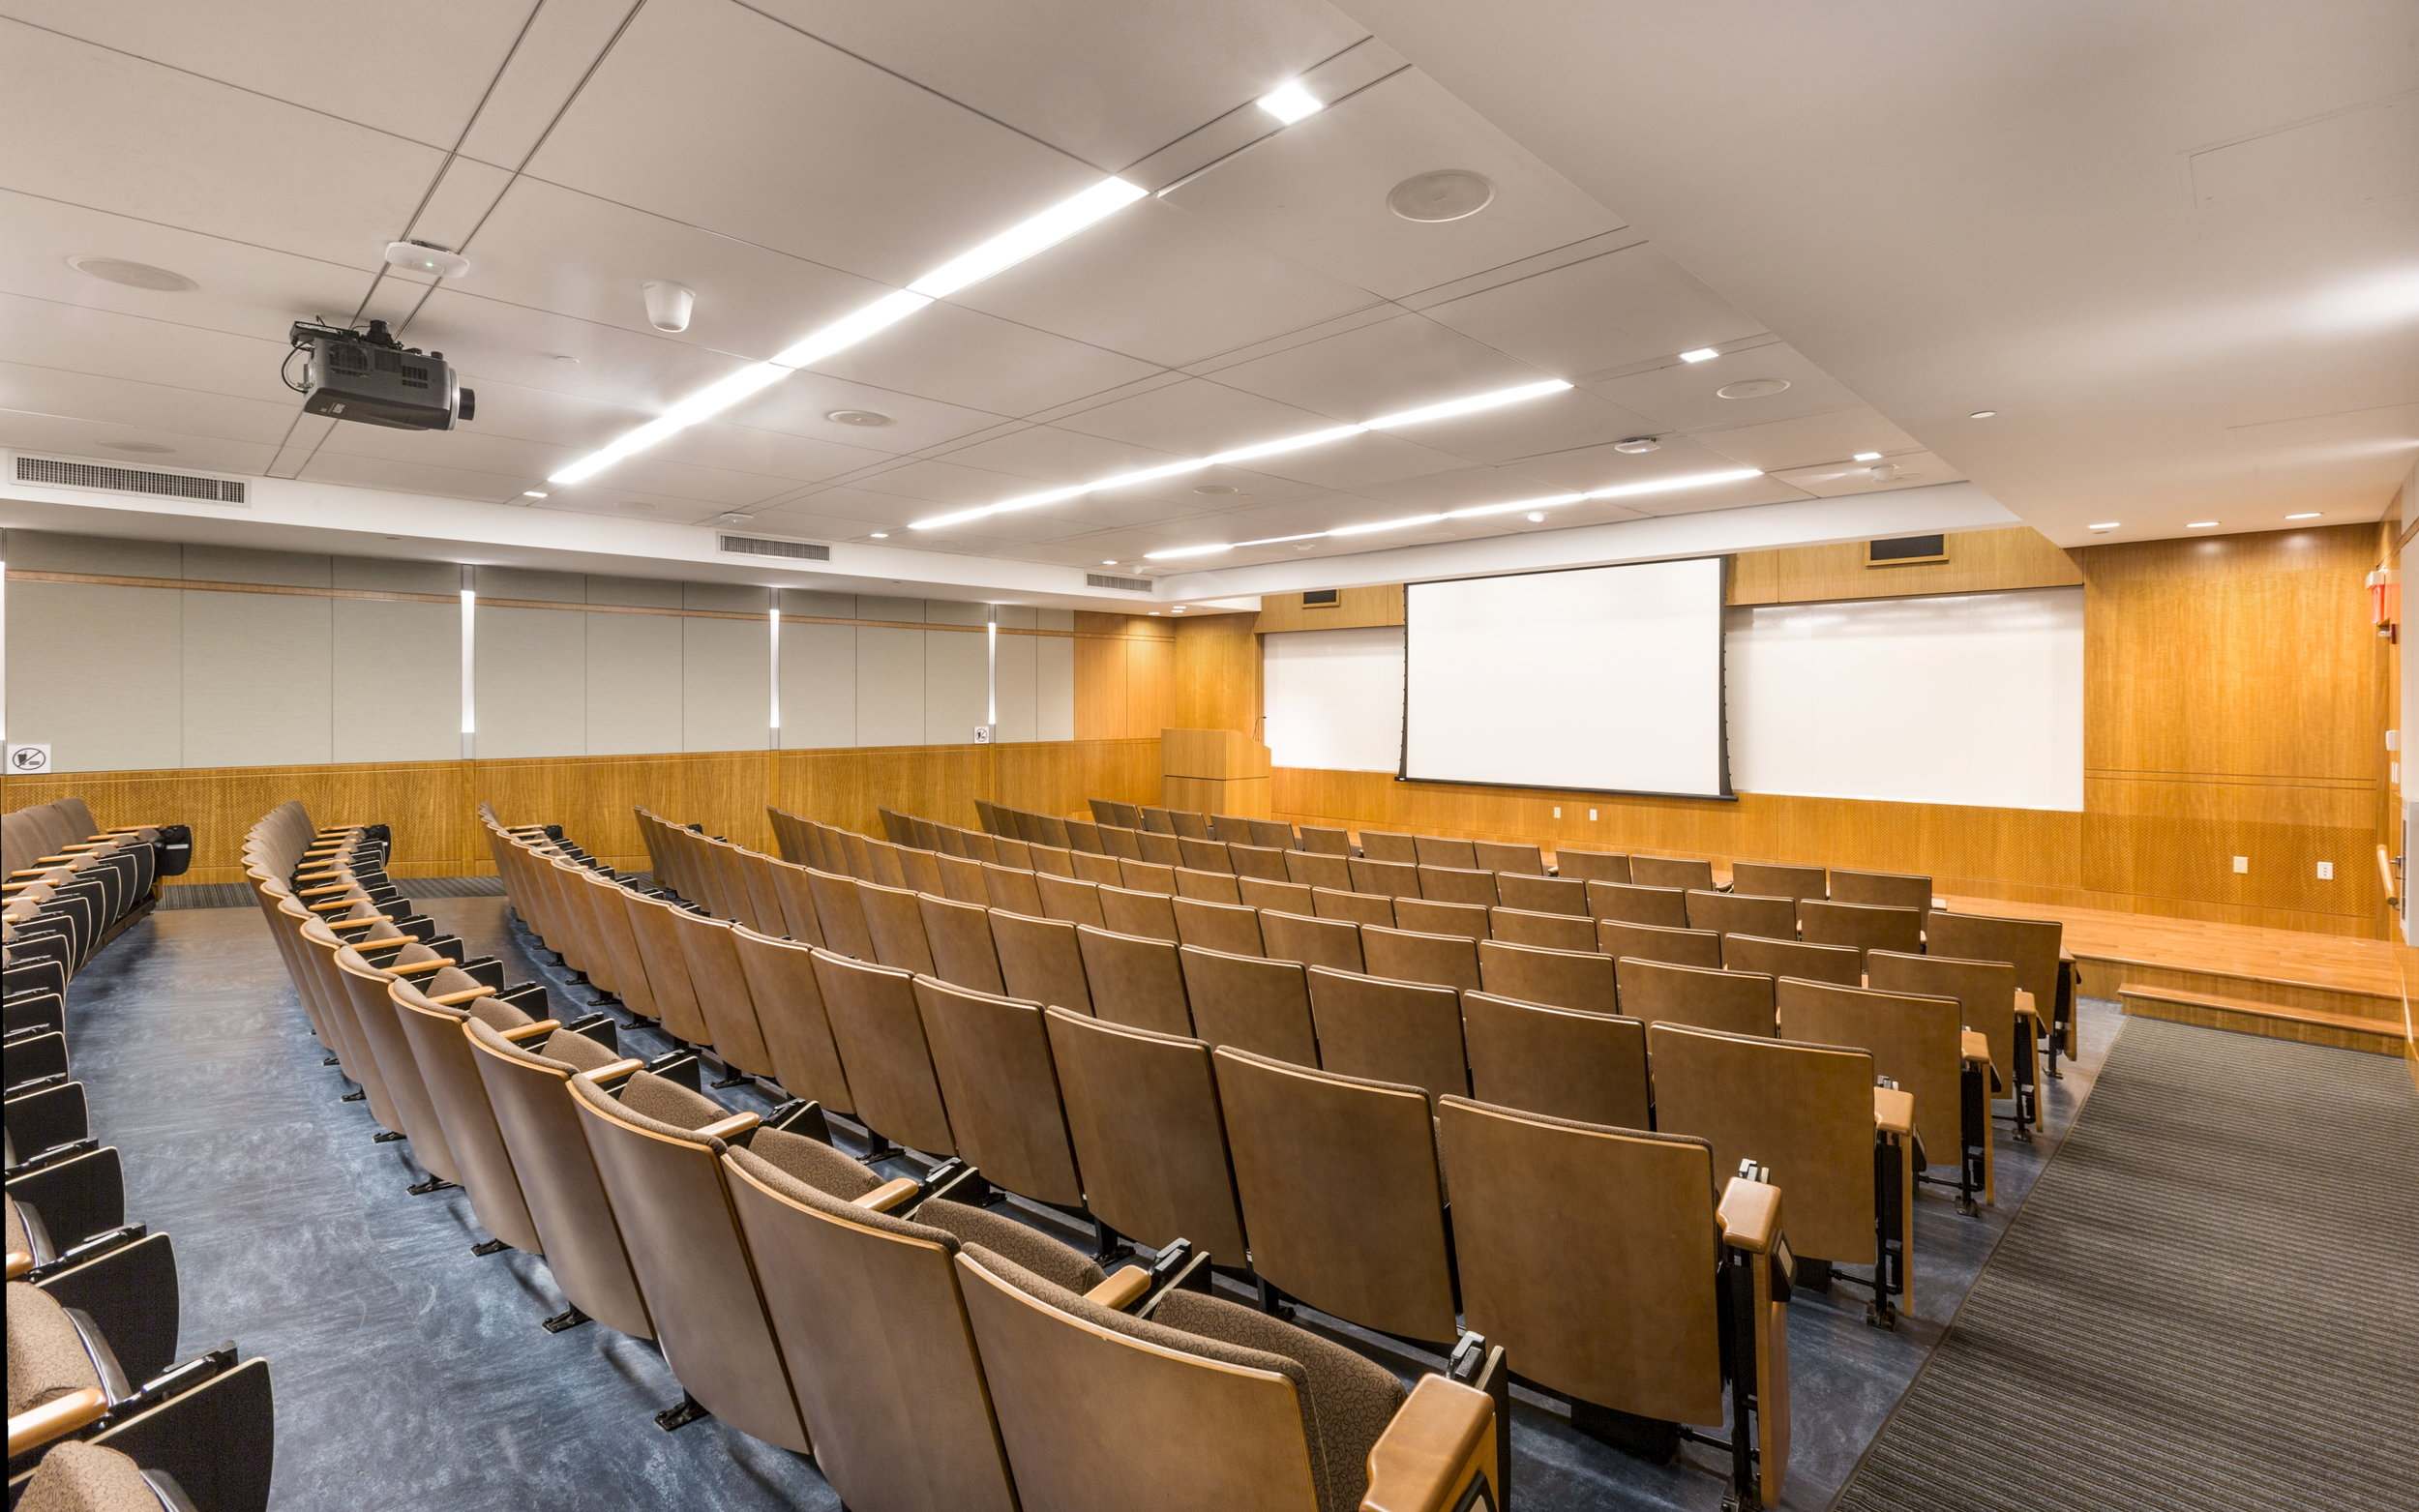 NYU LECTURE HALL